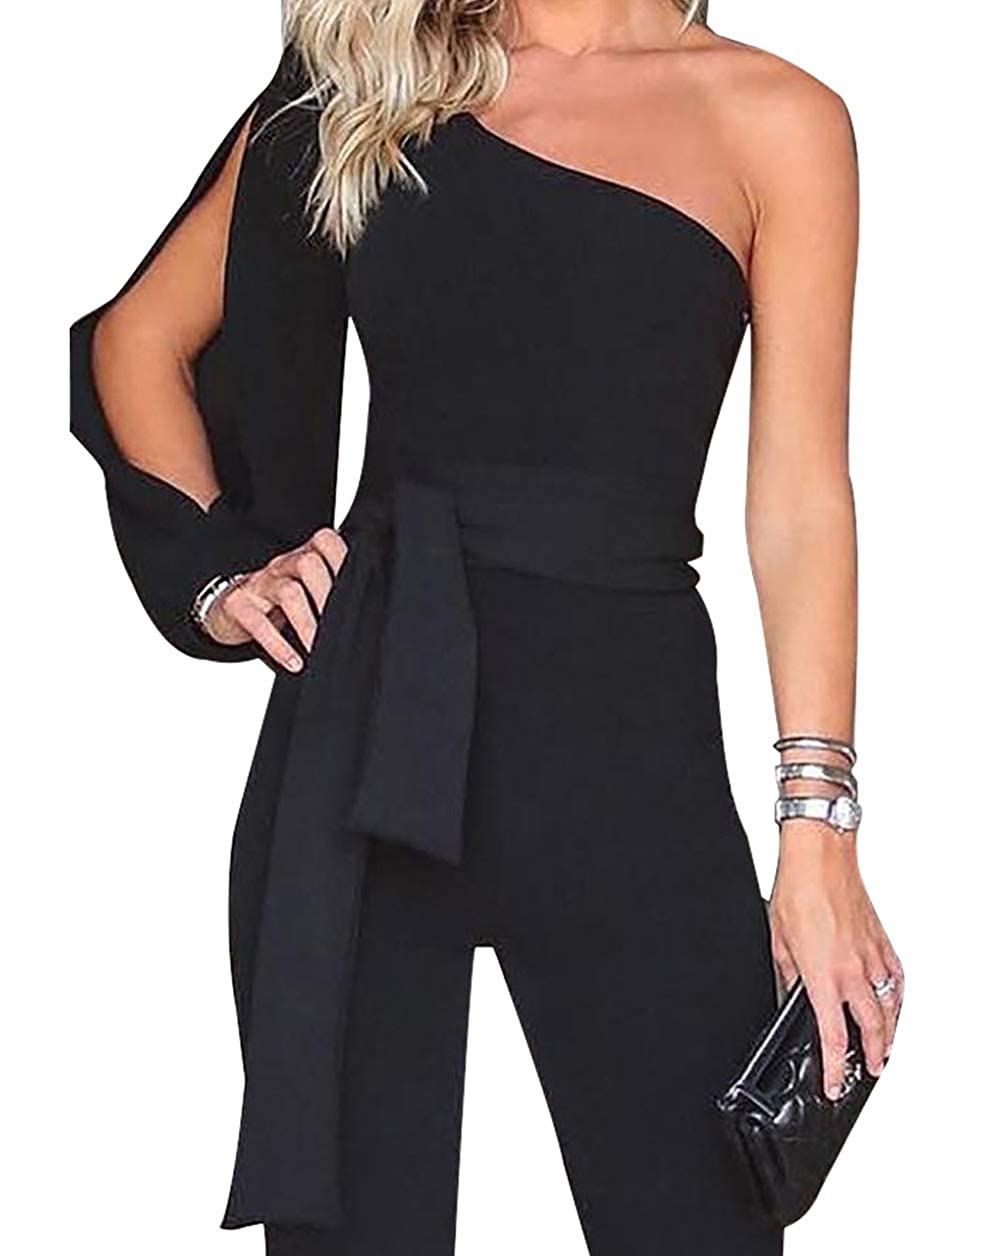 b27df922ec6 Voghtic Womens Elegant One Shoulder Long Sleeve Jumpsuits High Waisted  Romper with Belt